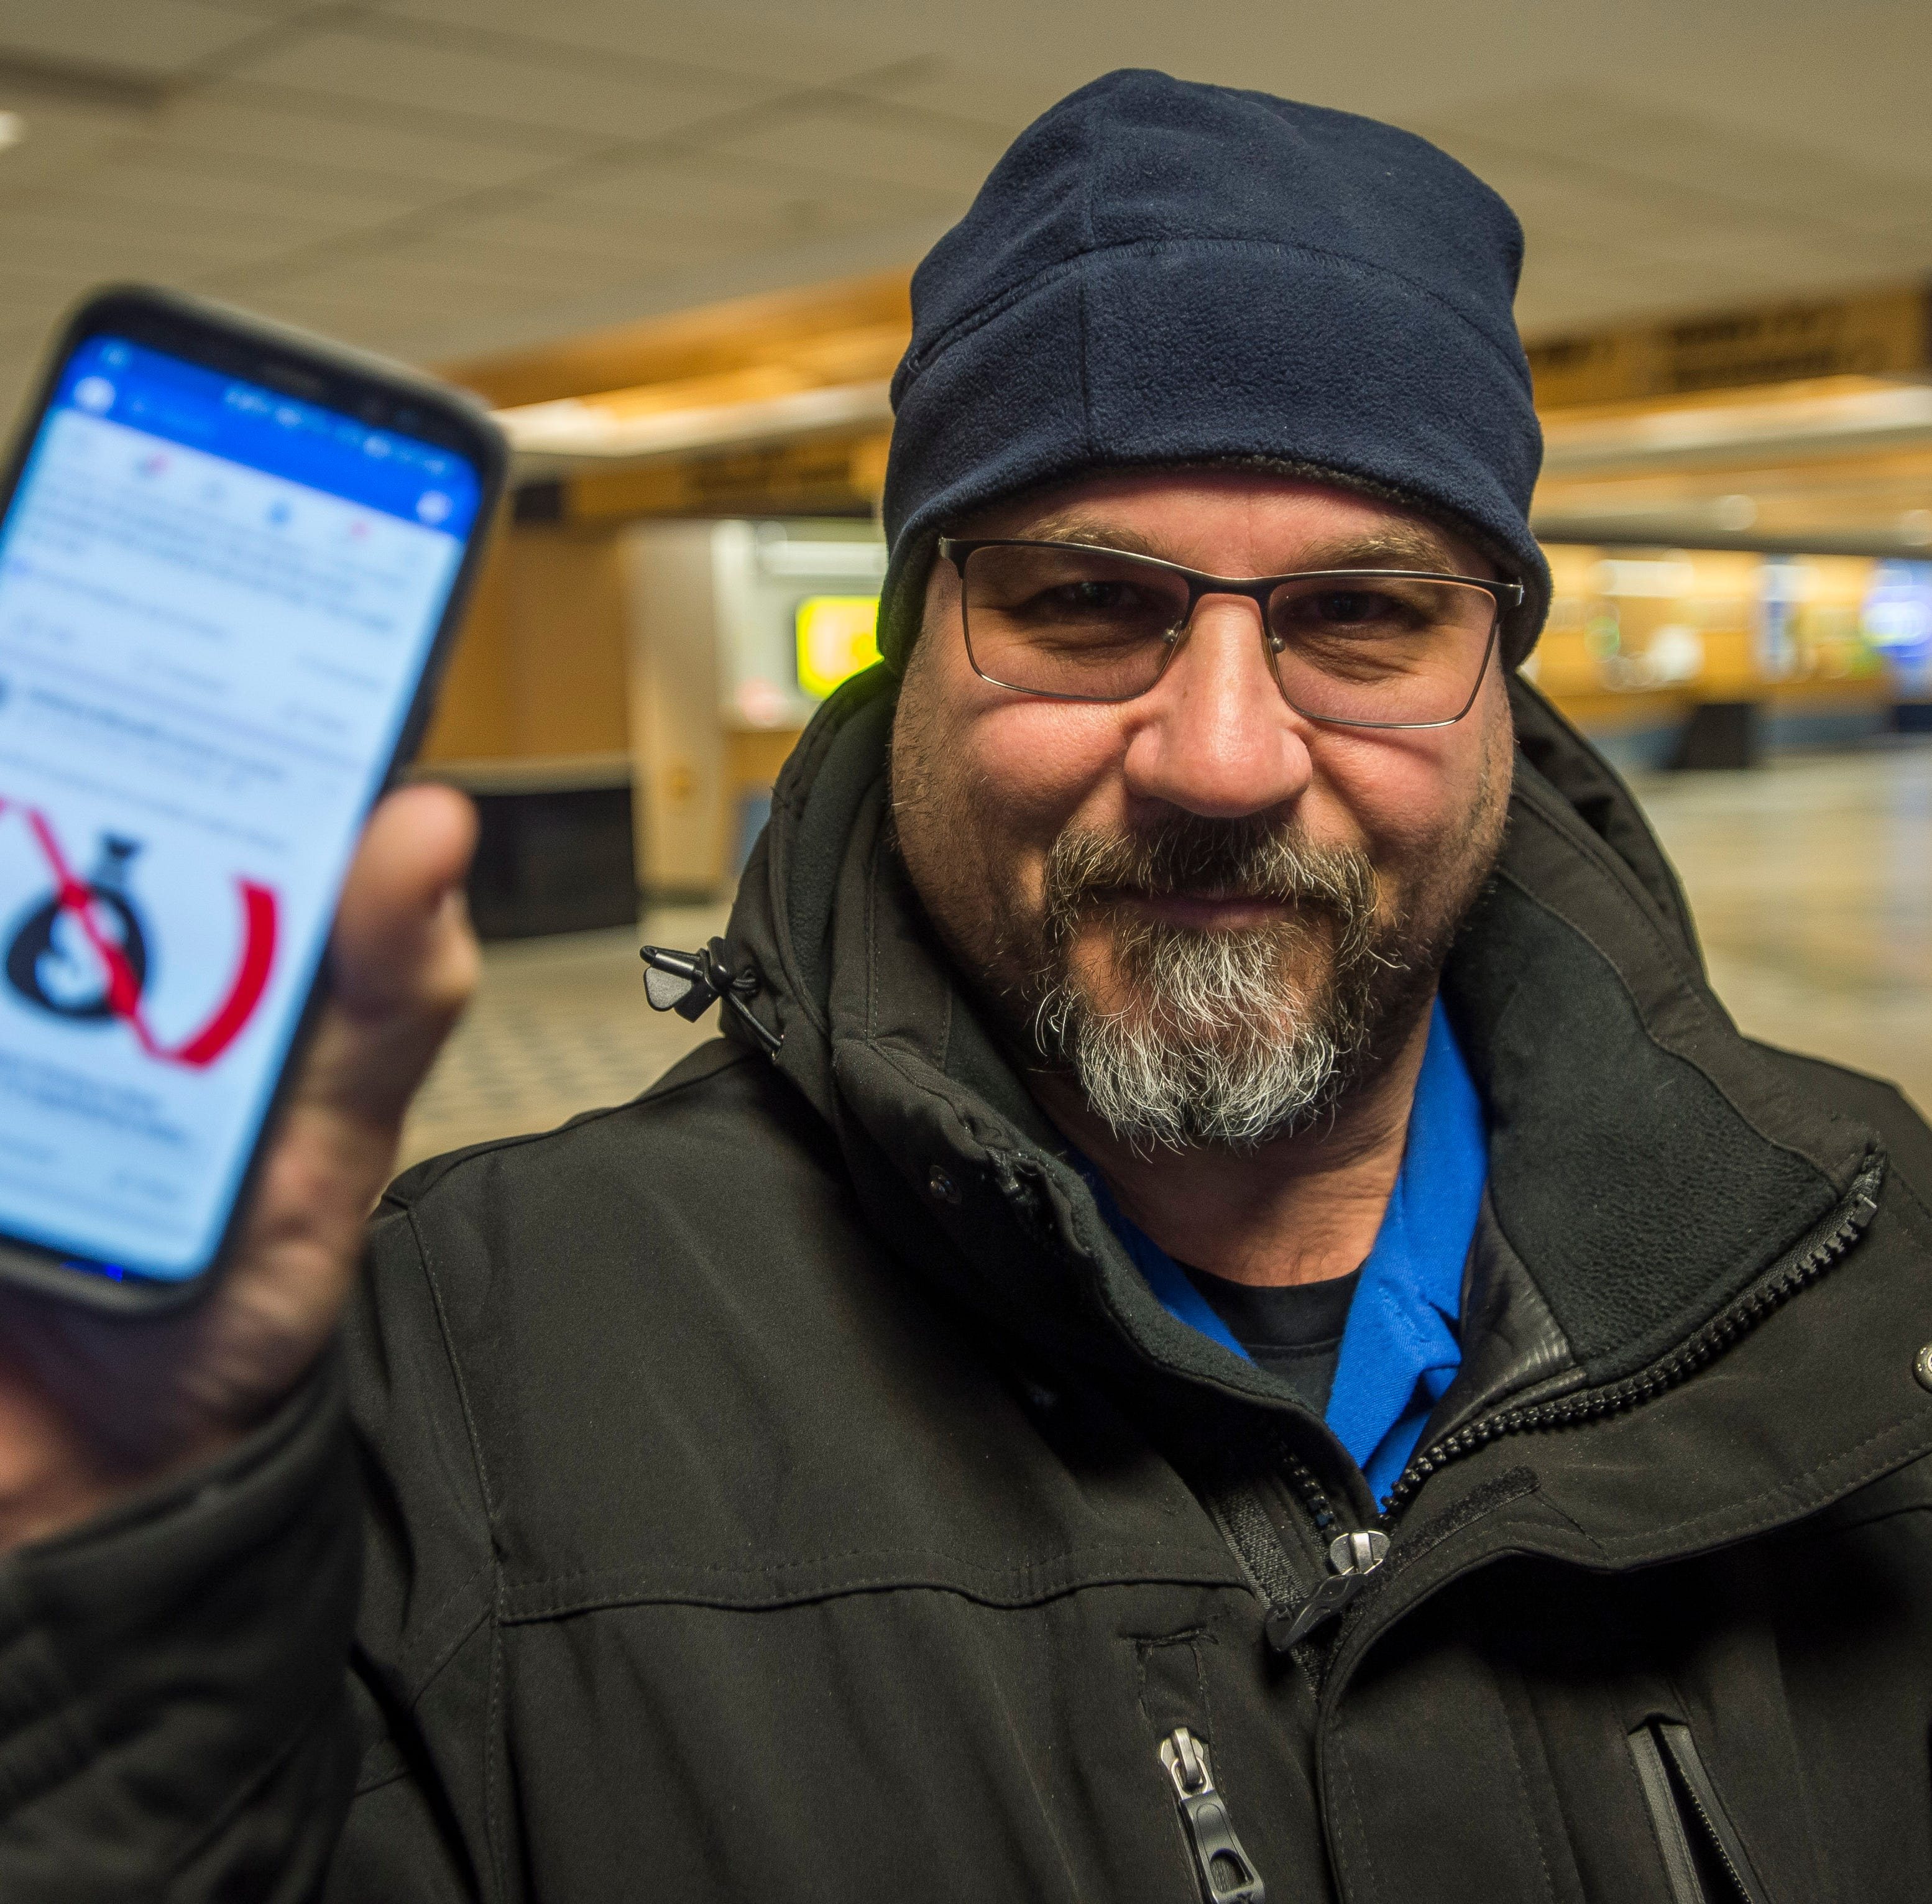 TSA agent Anthony Morselli of Georgia, VT, shows his GoFundMe post on Facebook before starting his shift at Burlington International Airport on Friday, Jan. 11, 2019. Morselli and his wife, both TSA agents, didn't get paid along with approximately 800,000 other federal workers and, to try to make ends meet, started the GoFundMe site to try to pay the bills as the government shutdown entered it's 21st day.